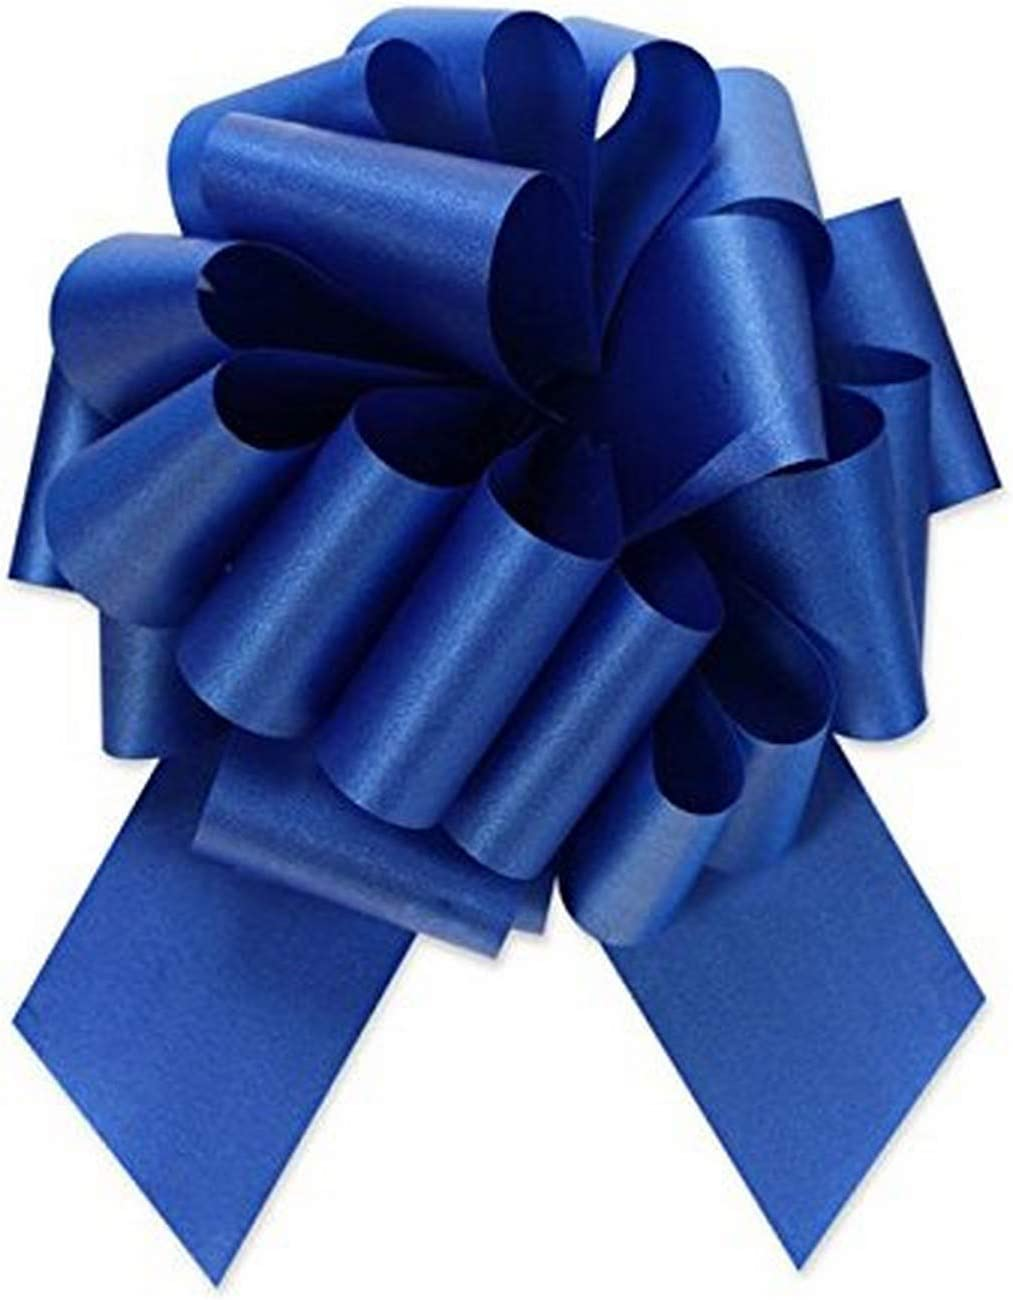 Berwick Offray Ribbon Pull Bow, 8'' Diameter with 20 Loops, Royal Blue: Arts, Crafts & Sewing